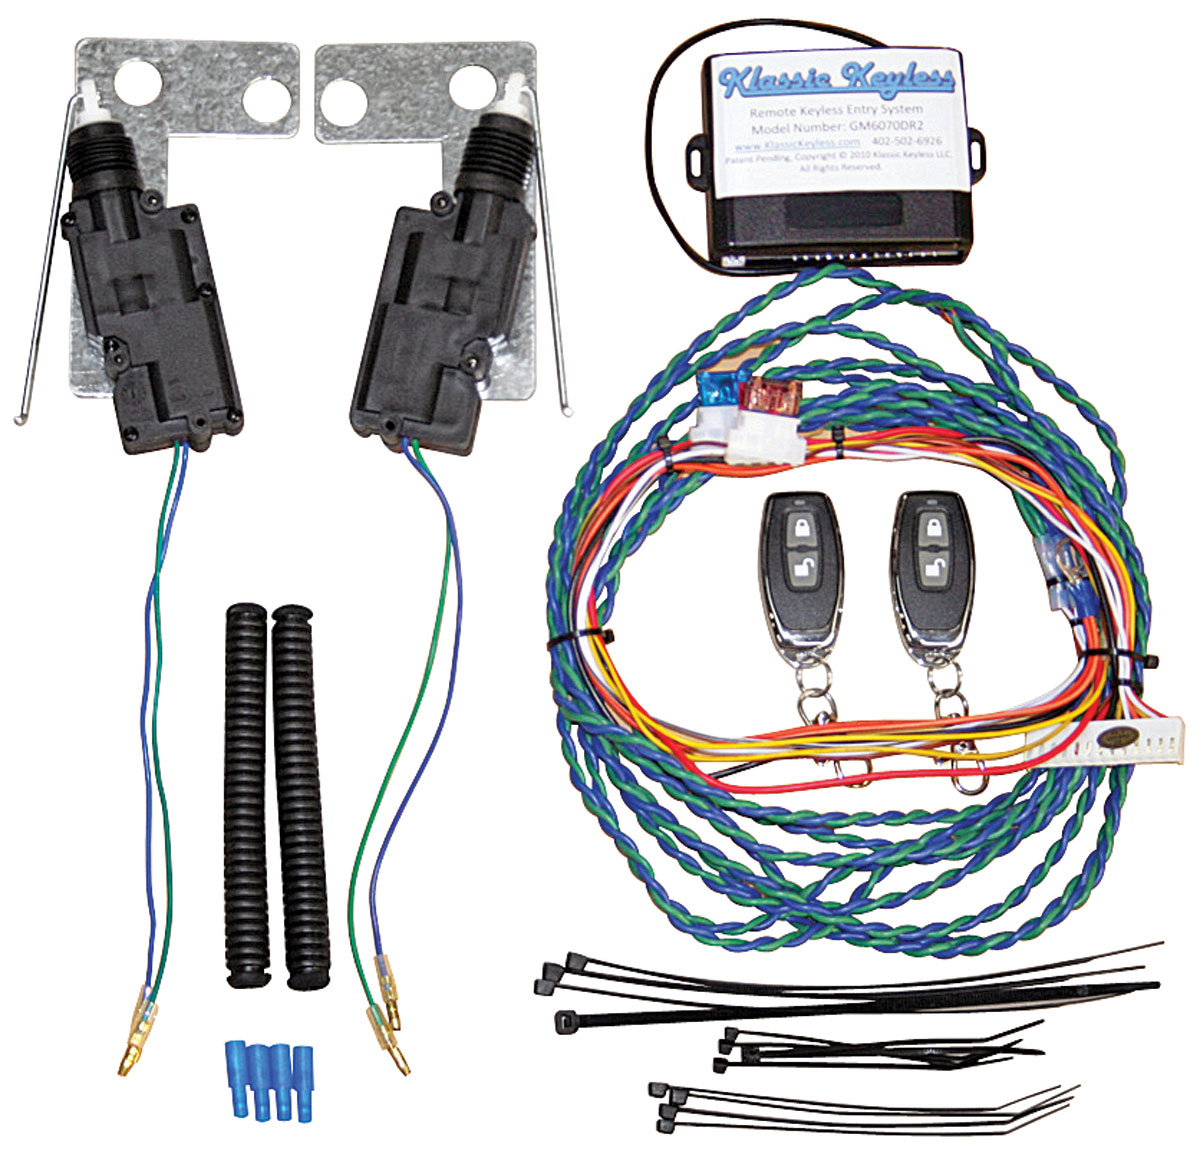 Photo of Keyless Entry Kits (2-Door)